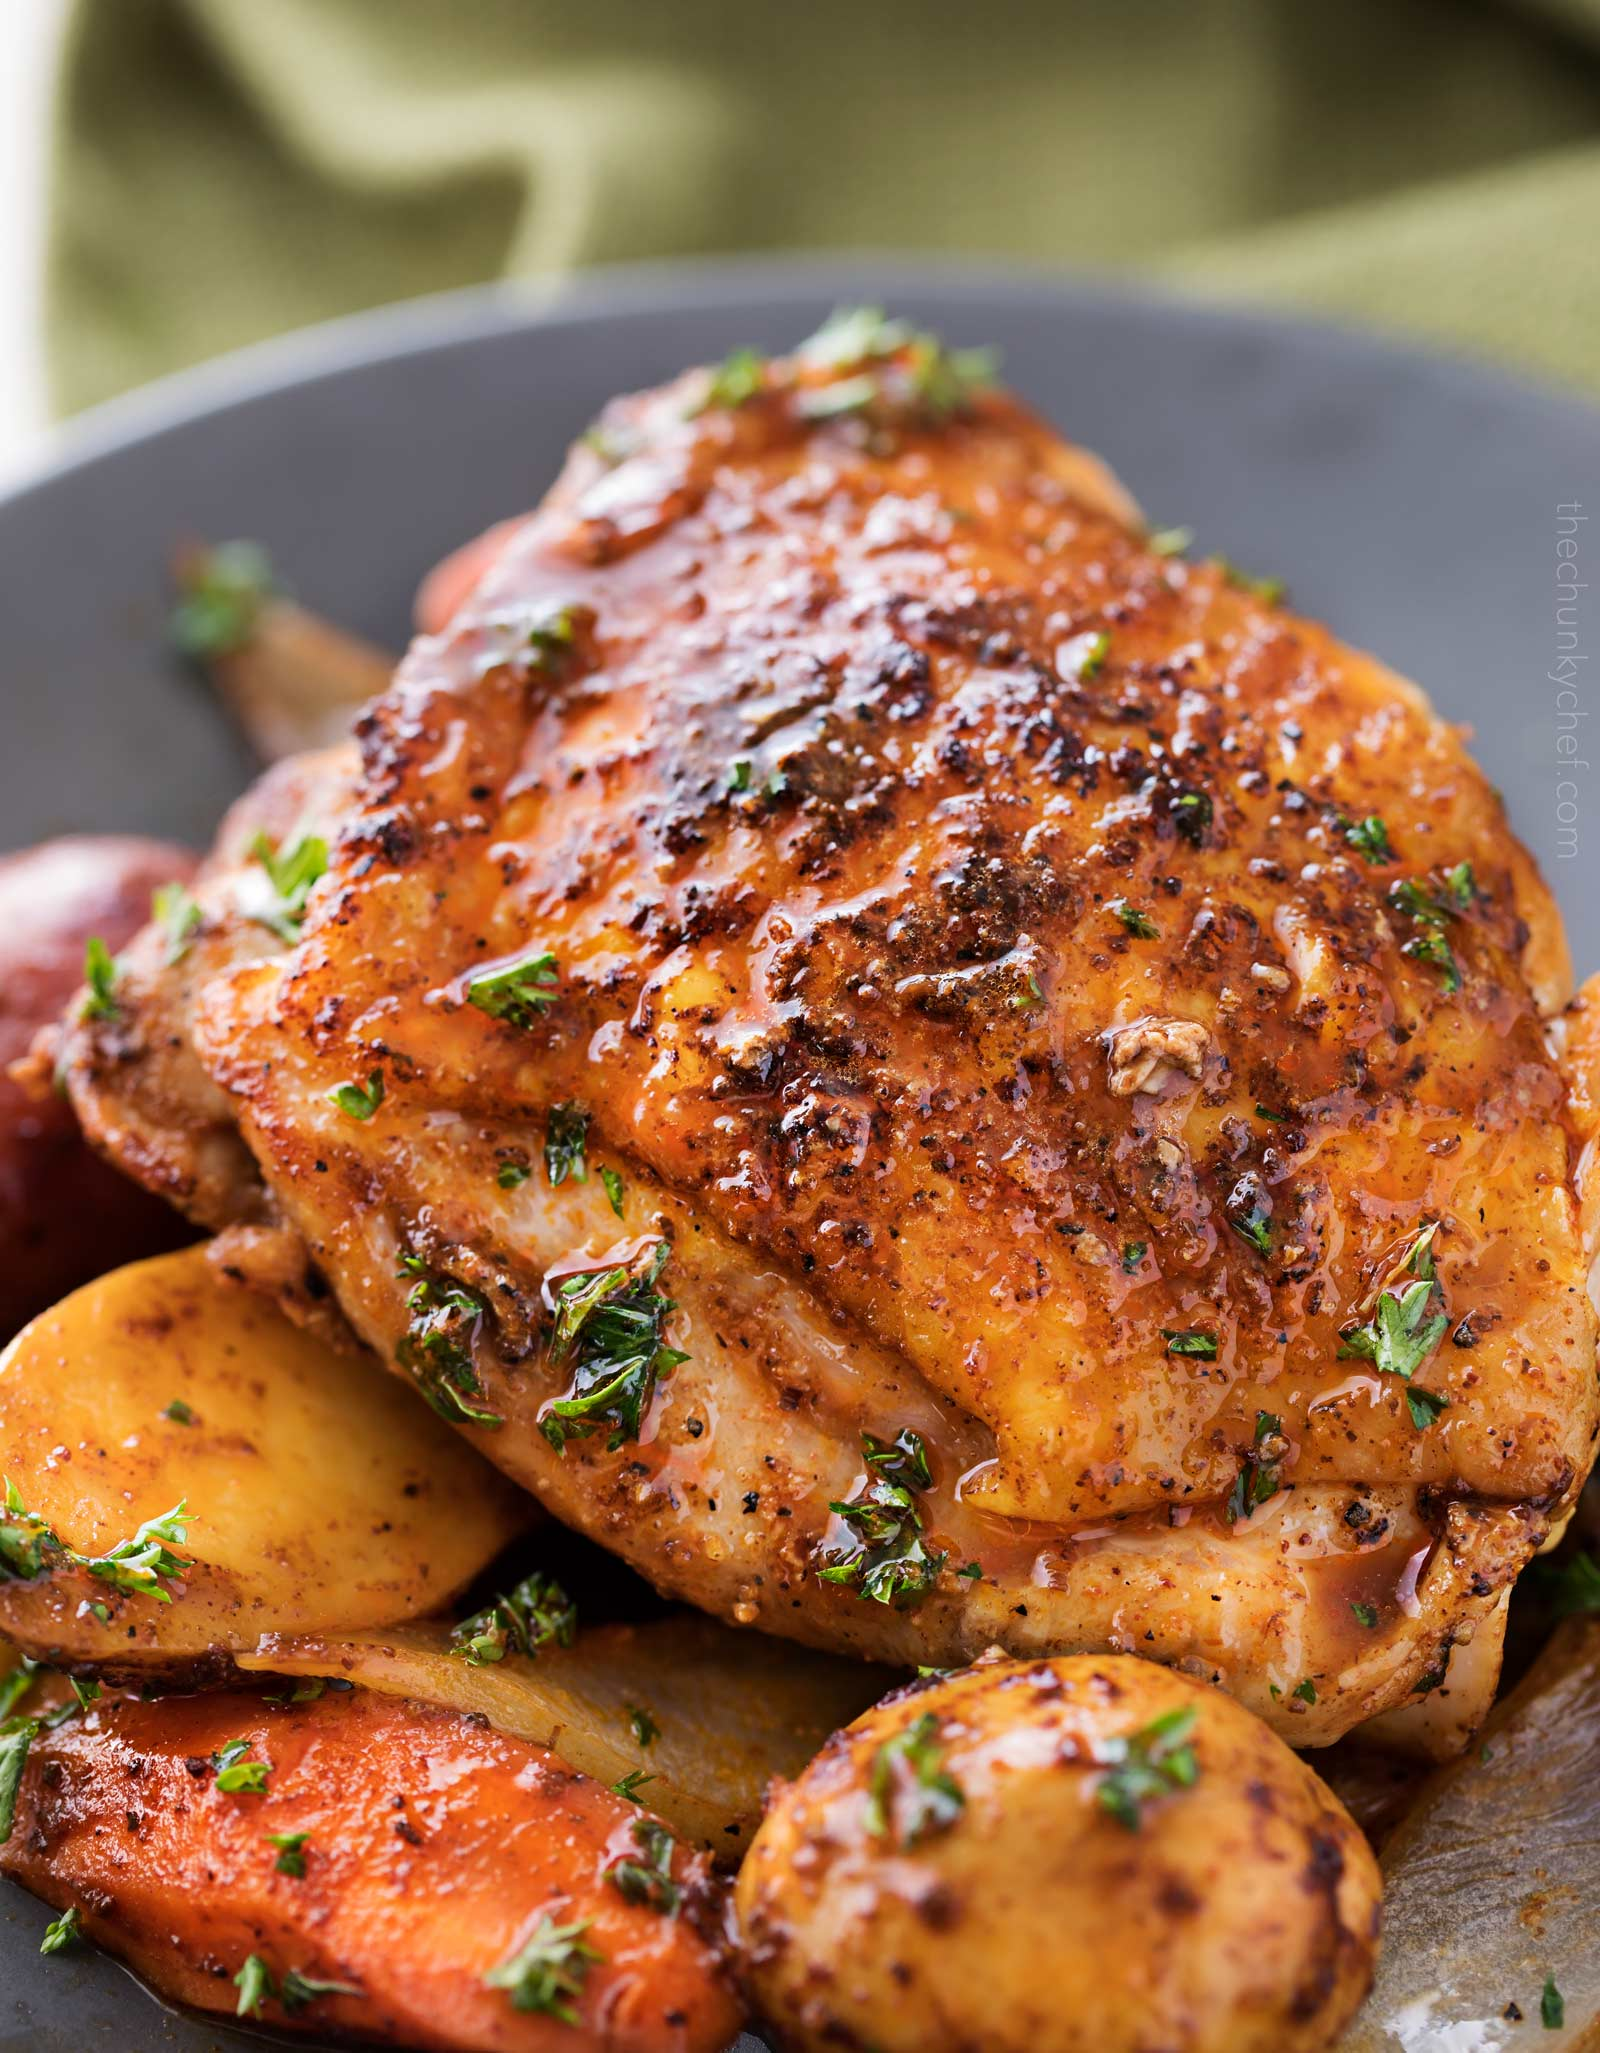 Slow cooker Harissa chicken and vegetables on plate